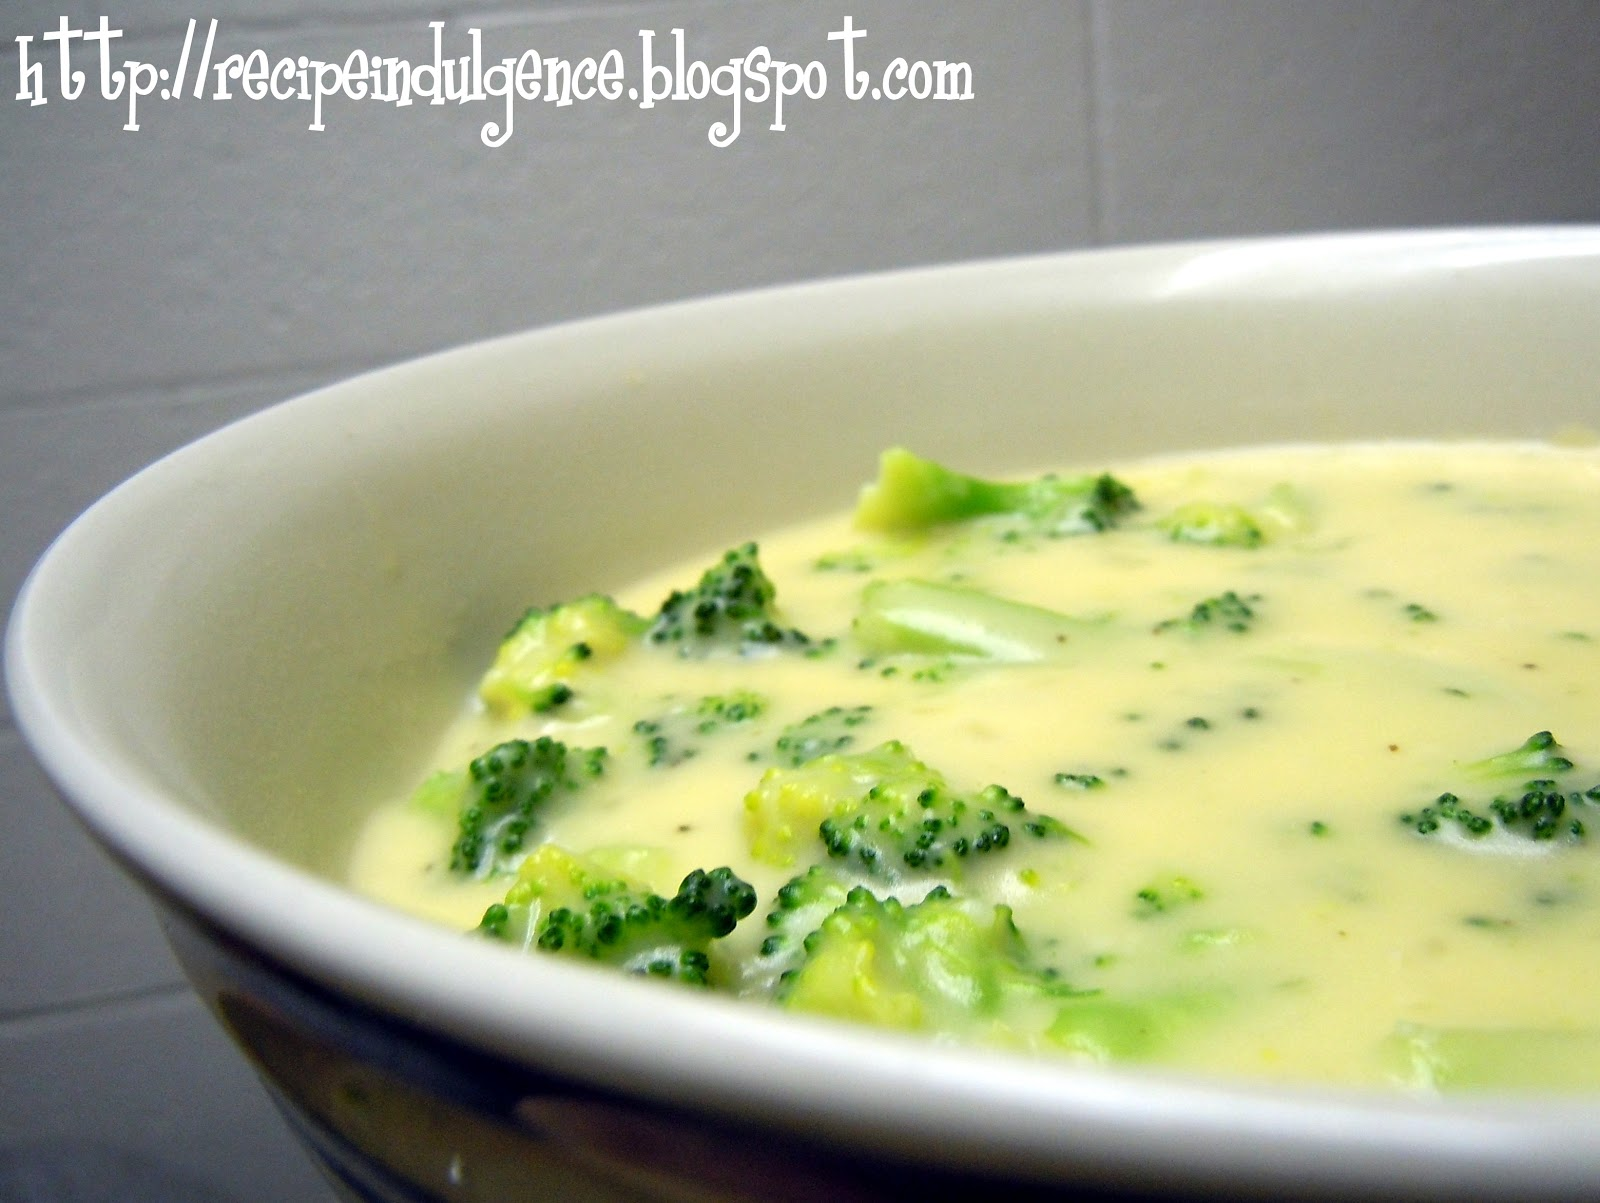 Recipe Indulgence: Broccoli Cheese Soup